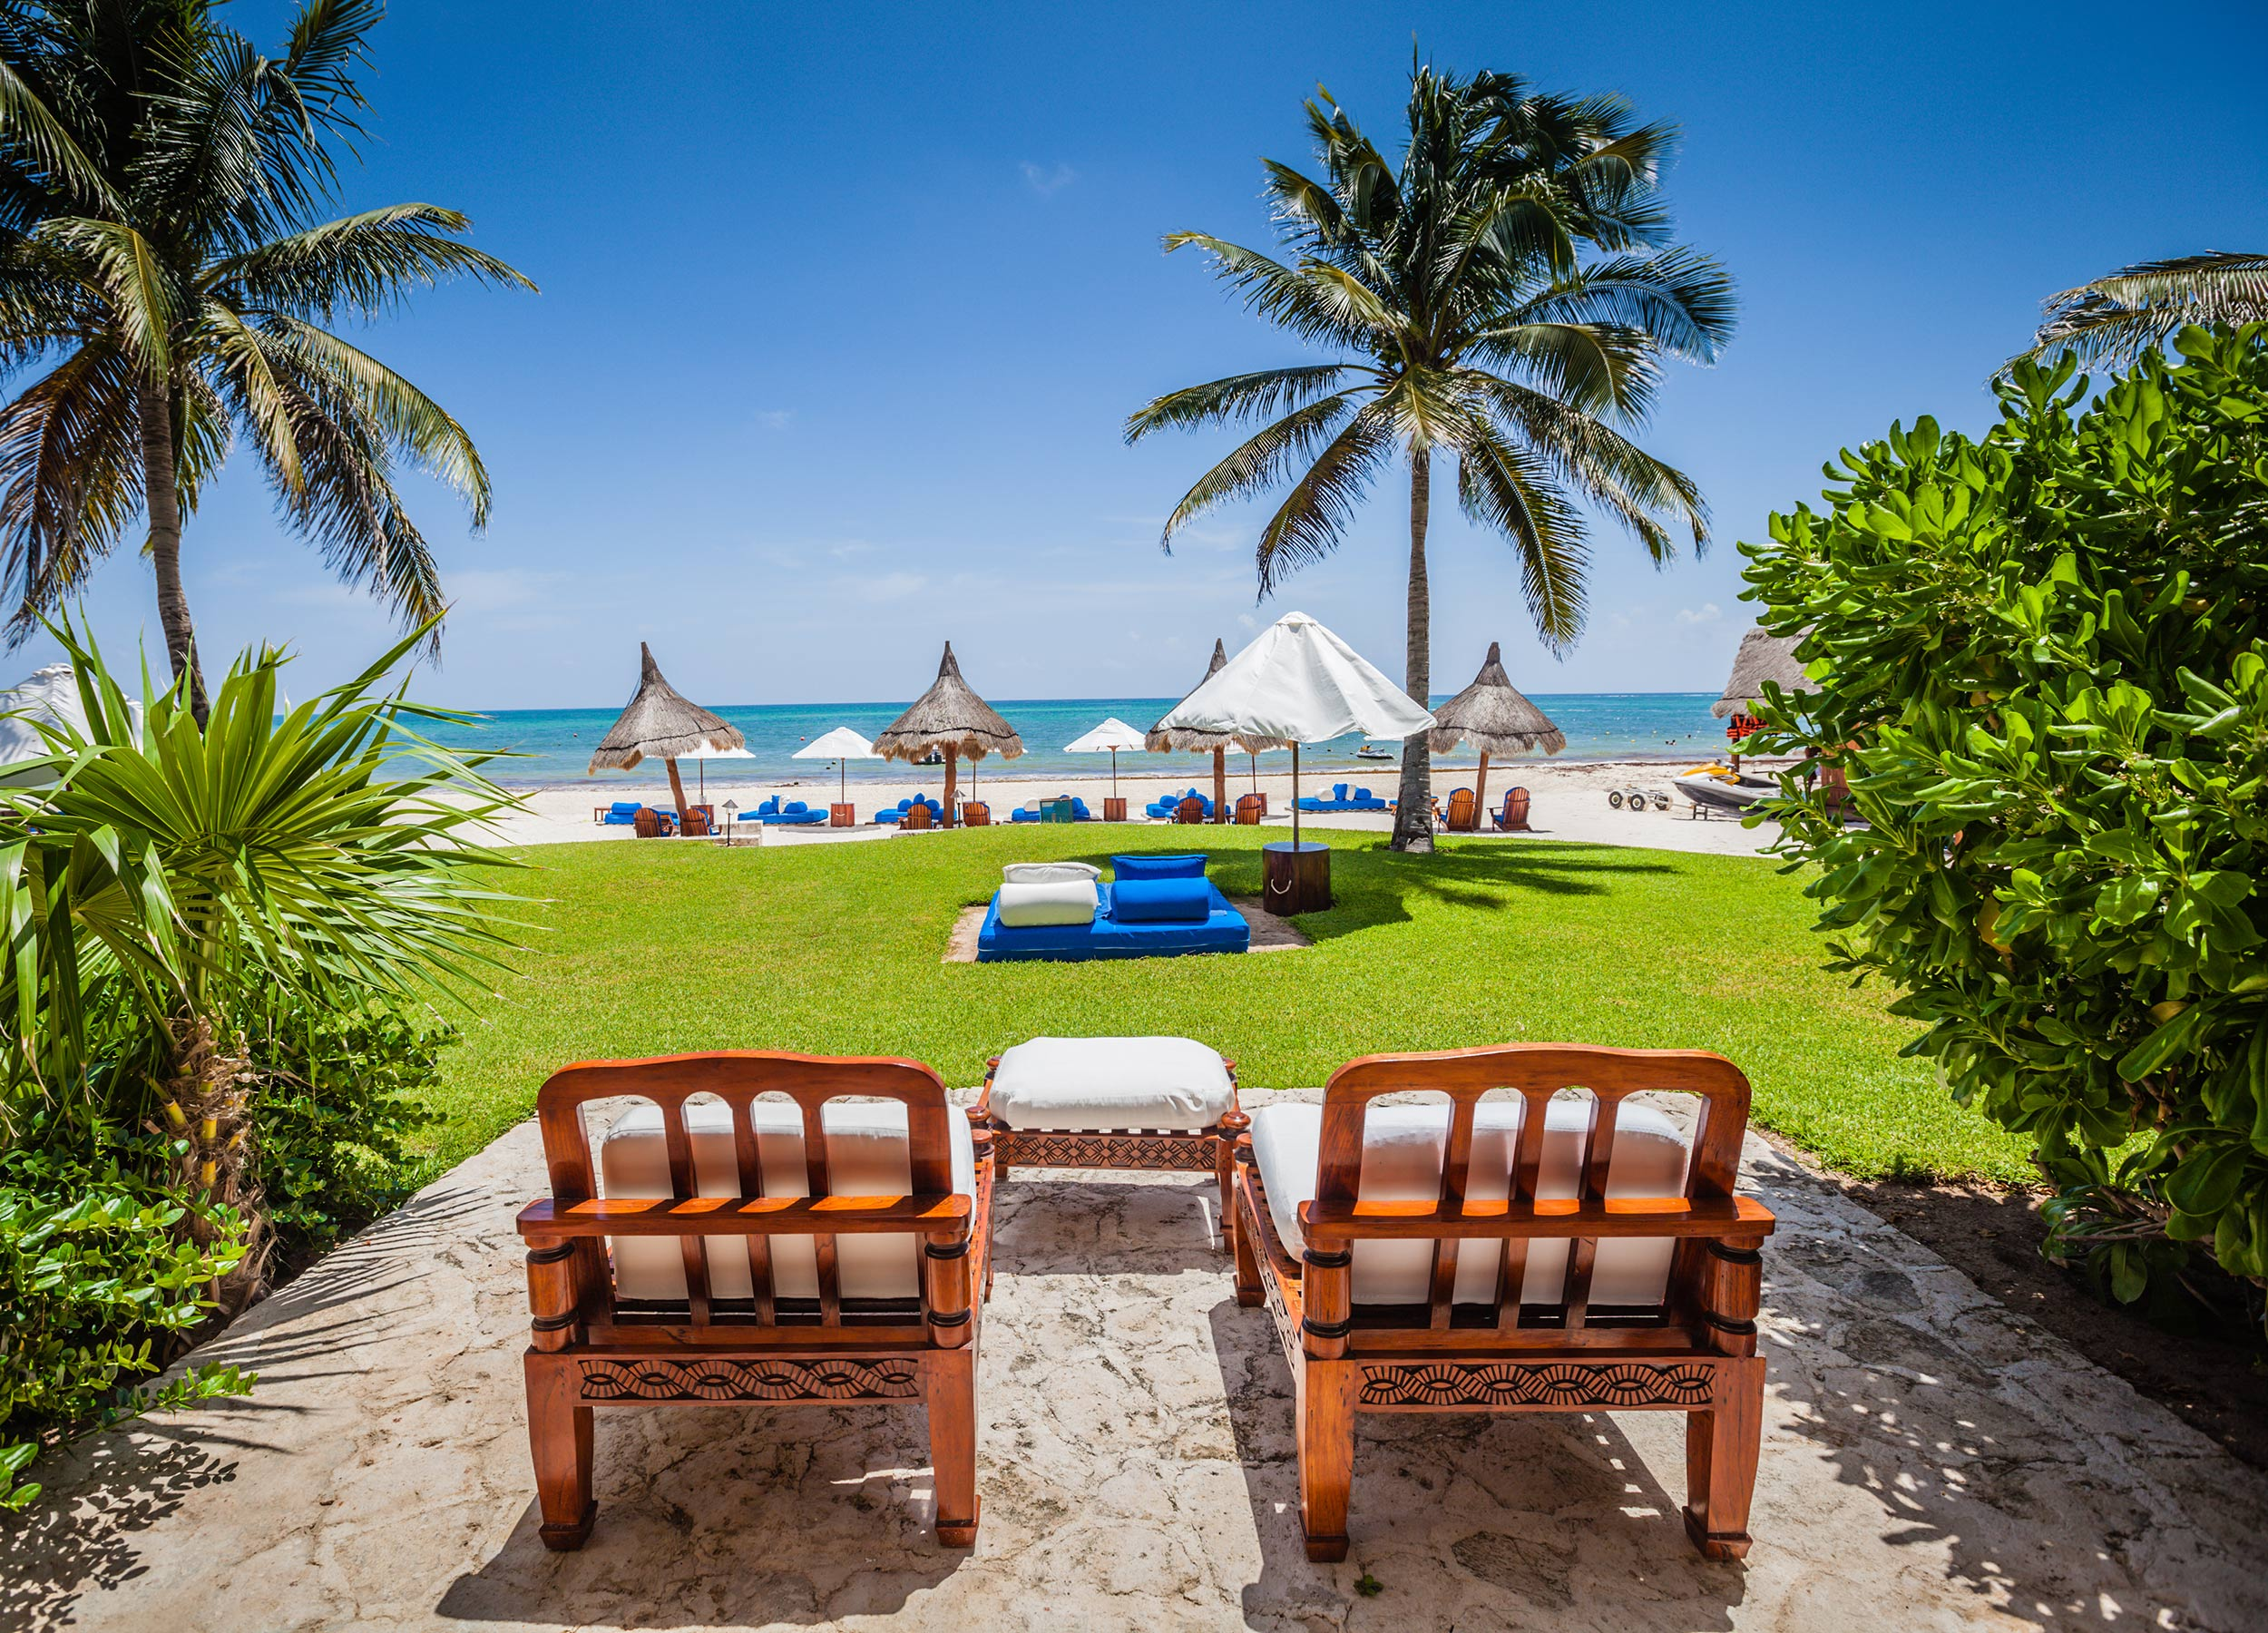 Two wooden chairs looking out to the umbrellas and loungers on the beach, Belmond Maroma in the Yucatan.